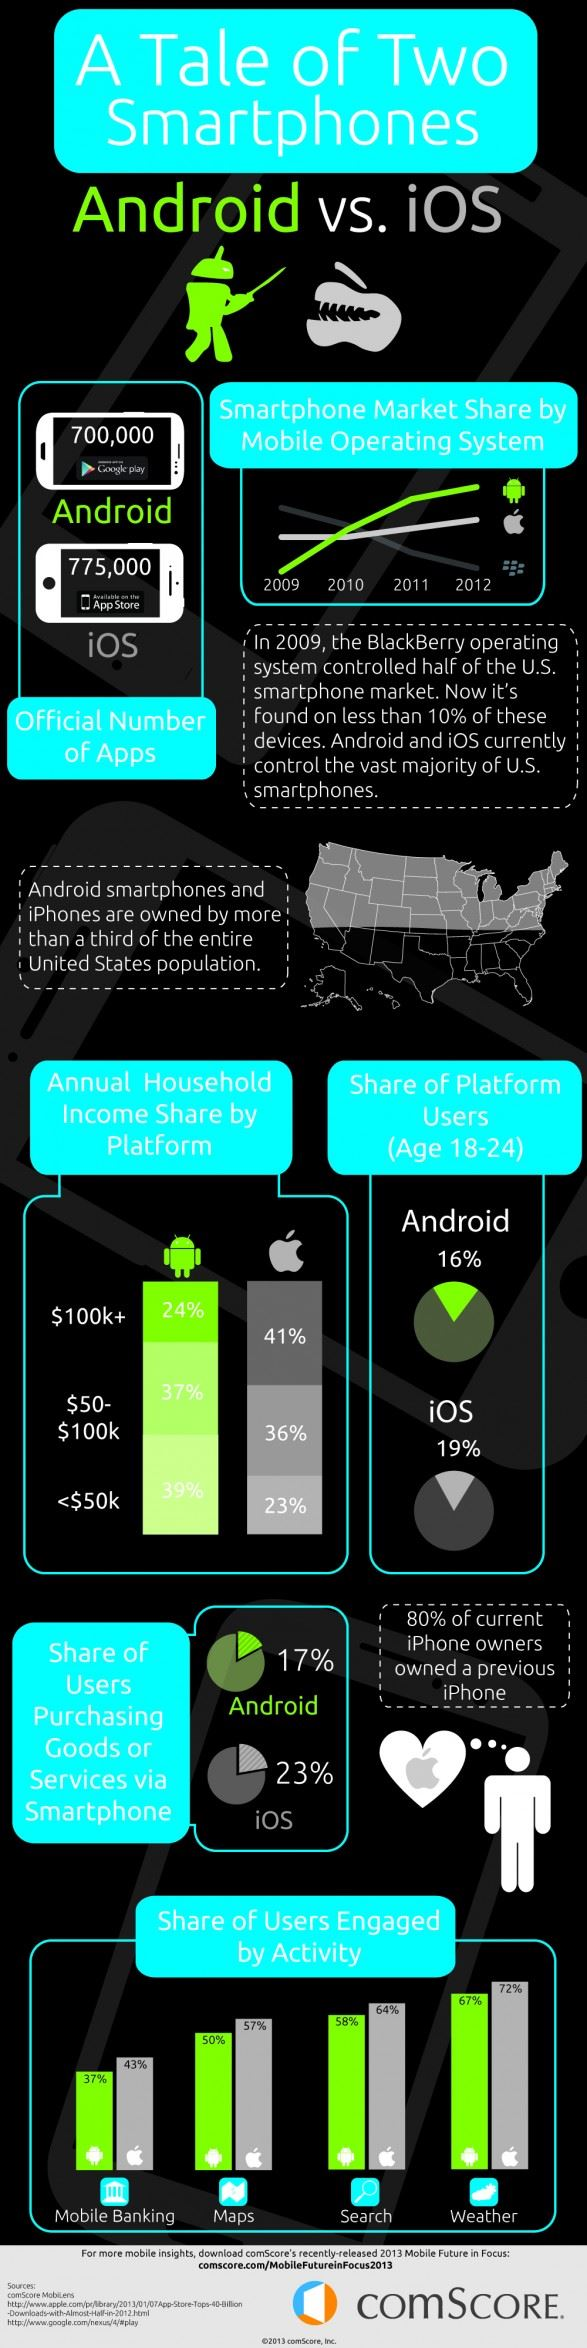 INFOGRAPHIC: What Developers Should Know About Android Vs. iOS